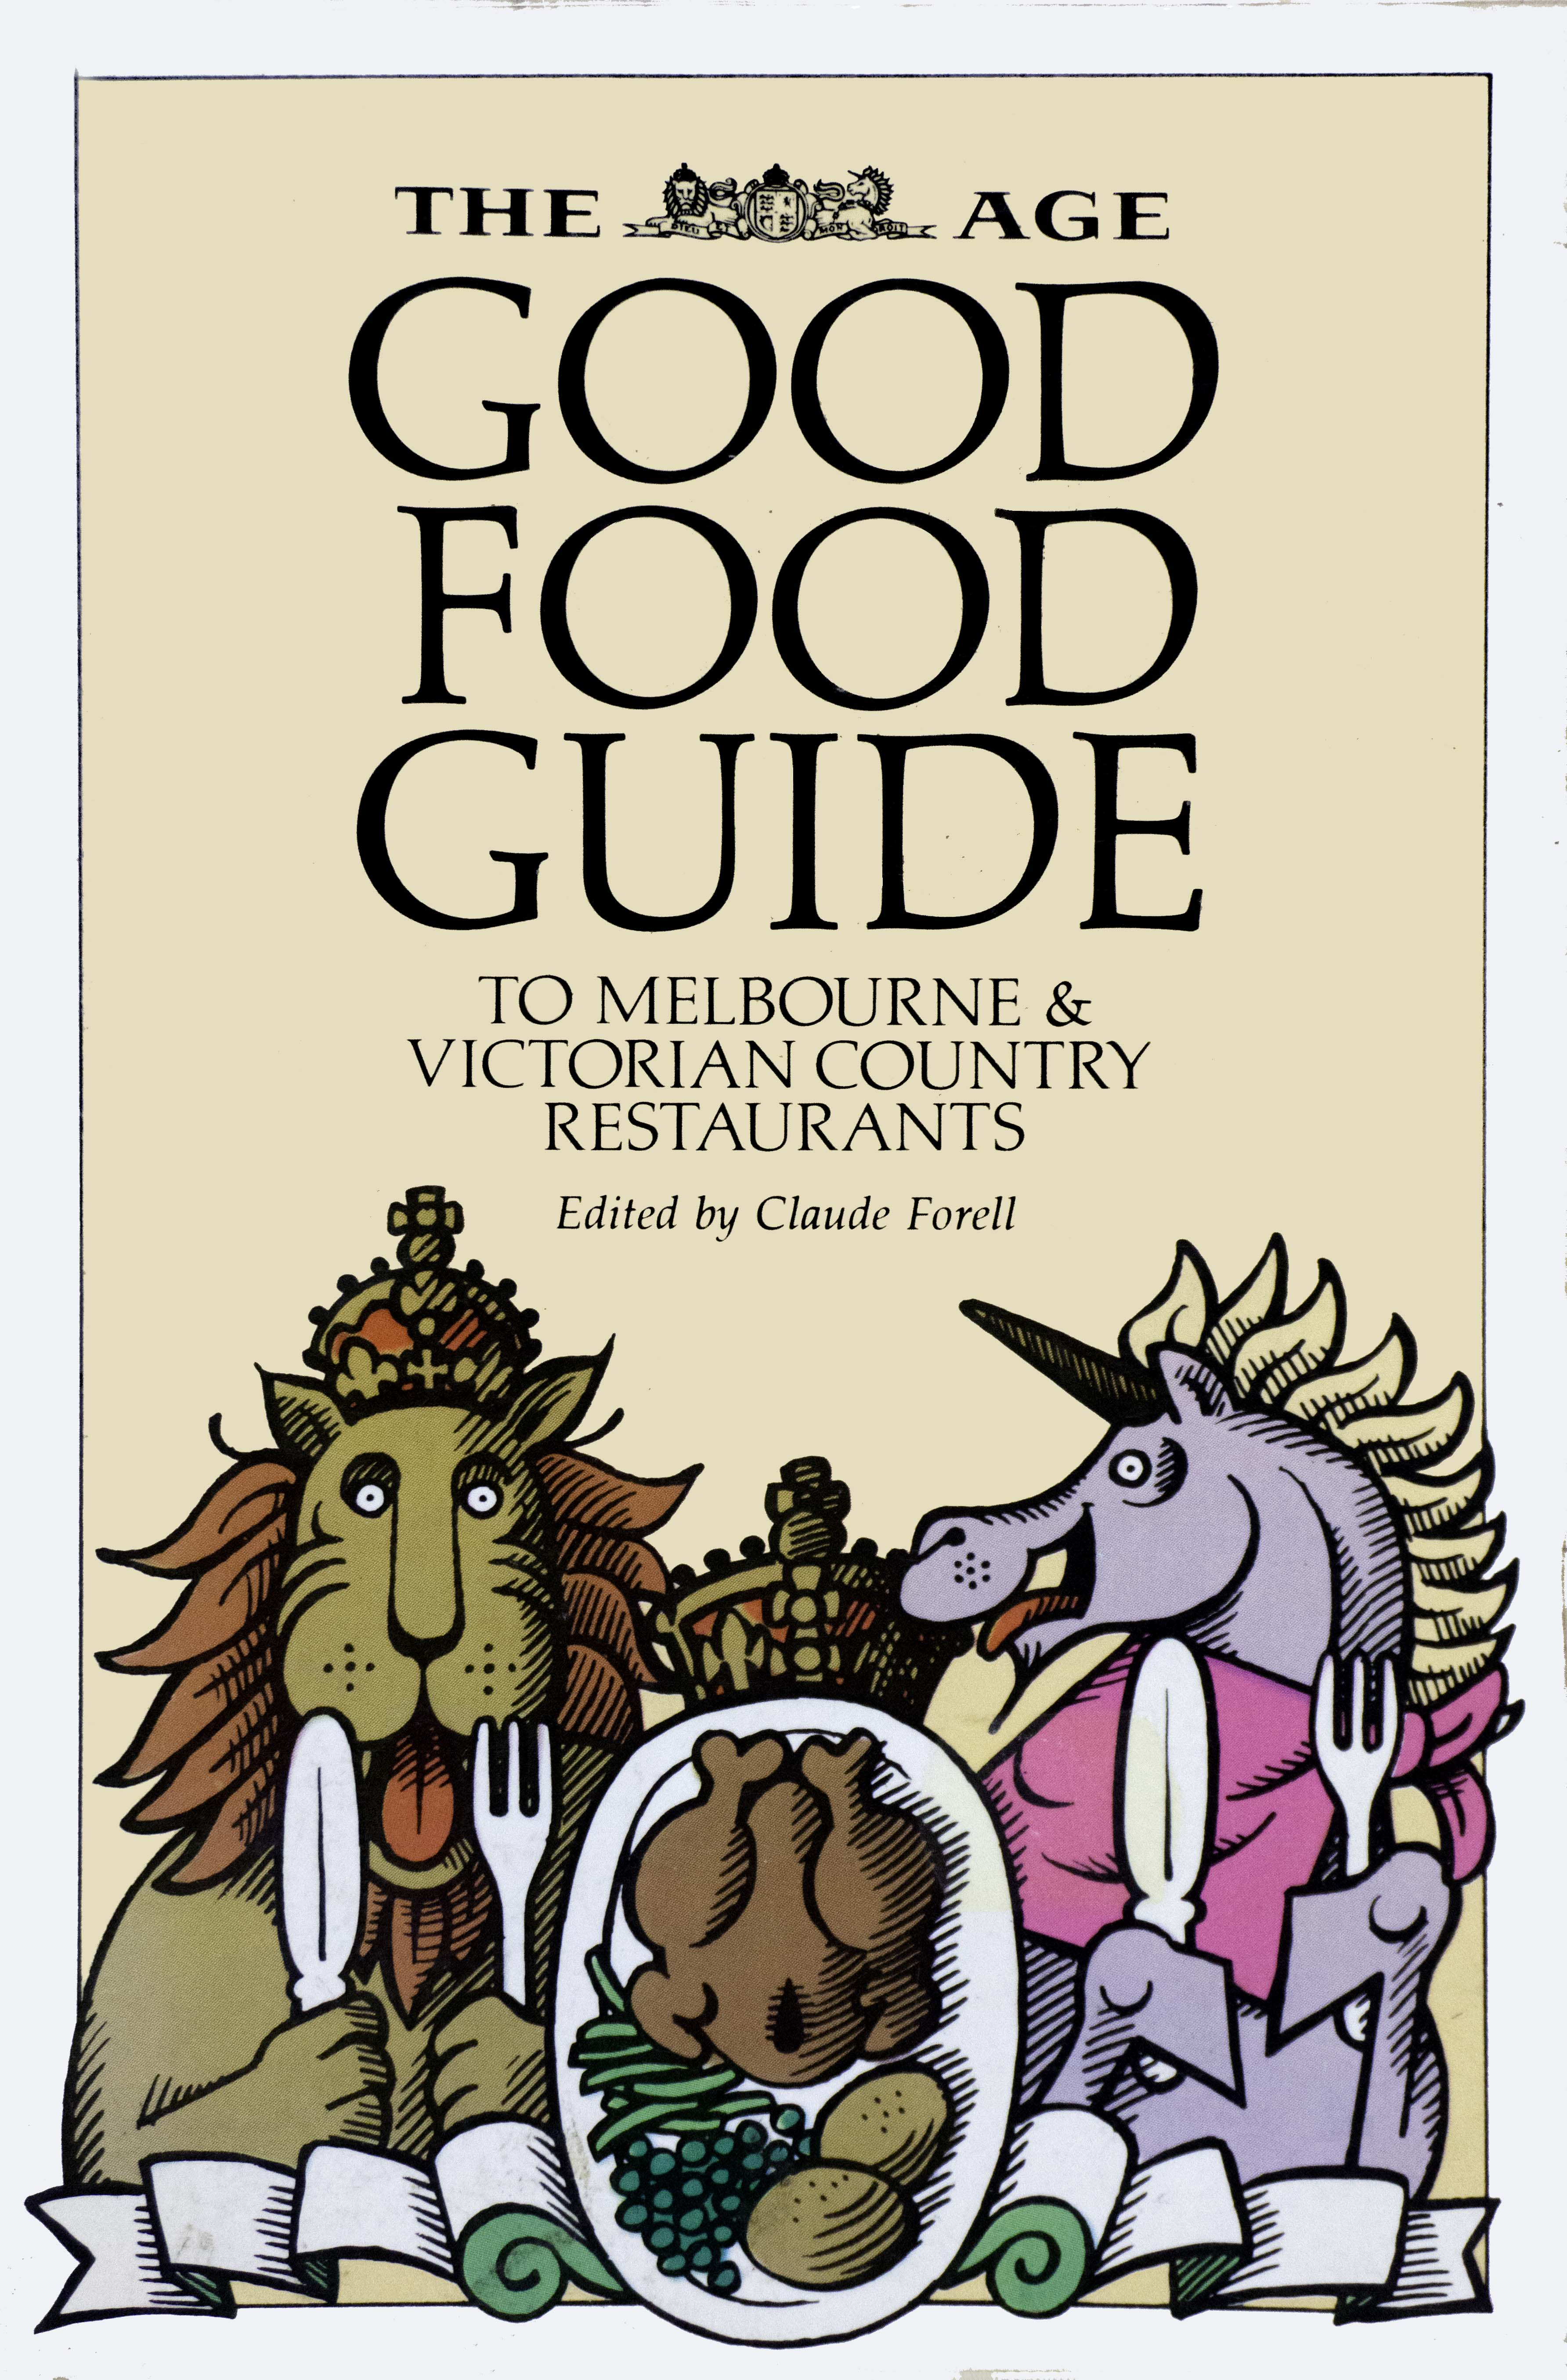 The age good food guide awards 2015 melbourne food & wine festival.